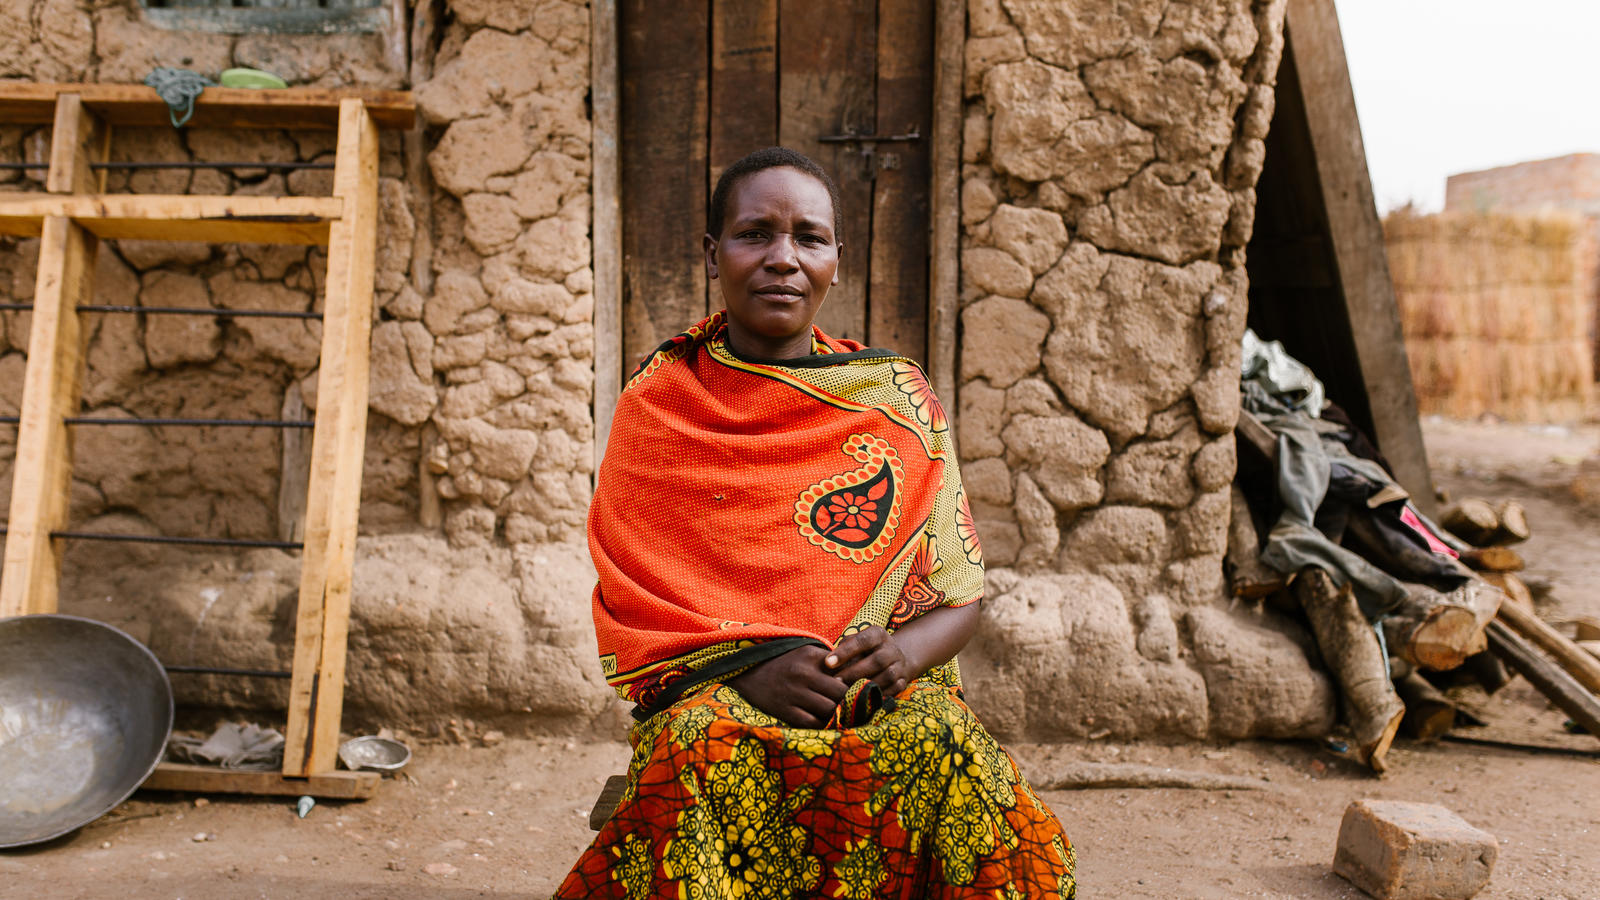 Salome Elias 39, shown at home in Nyarugusu. Her eighth child, a baby girl she called Margaret, died of fever and suspected infection on her third day of life. Nyarugusu, Geita district, Tanzania, September 2017.